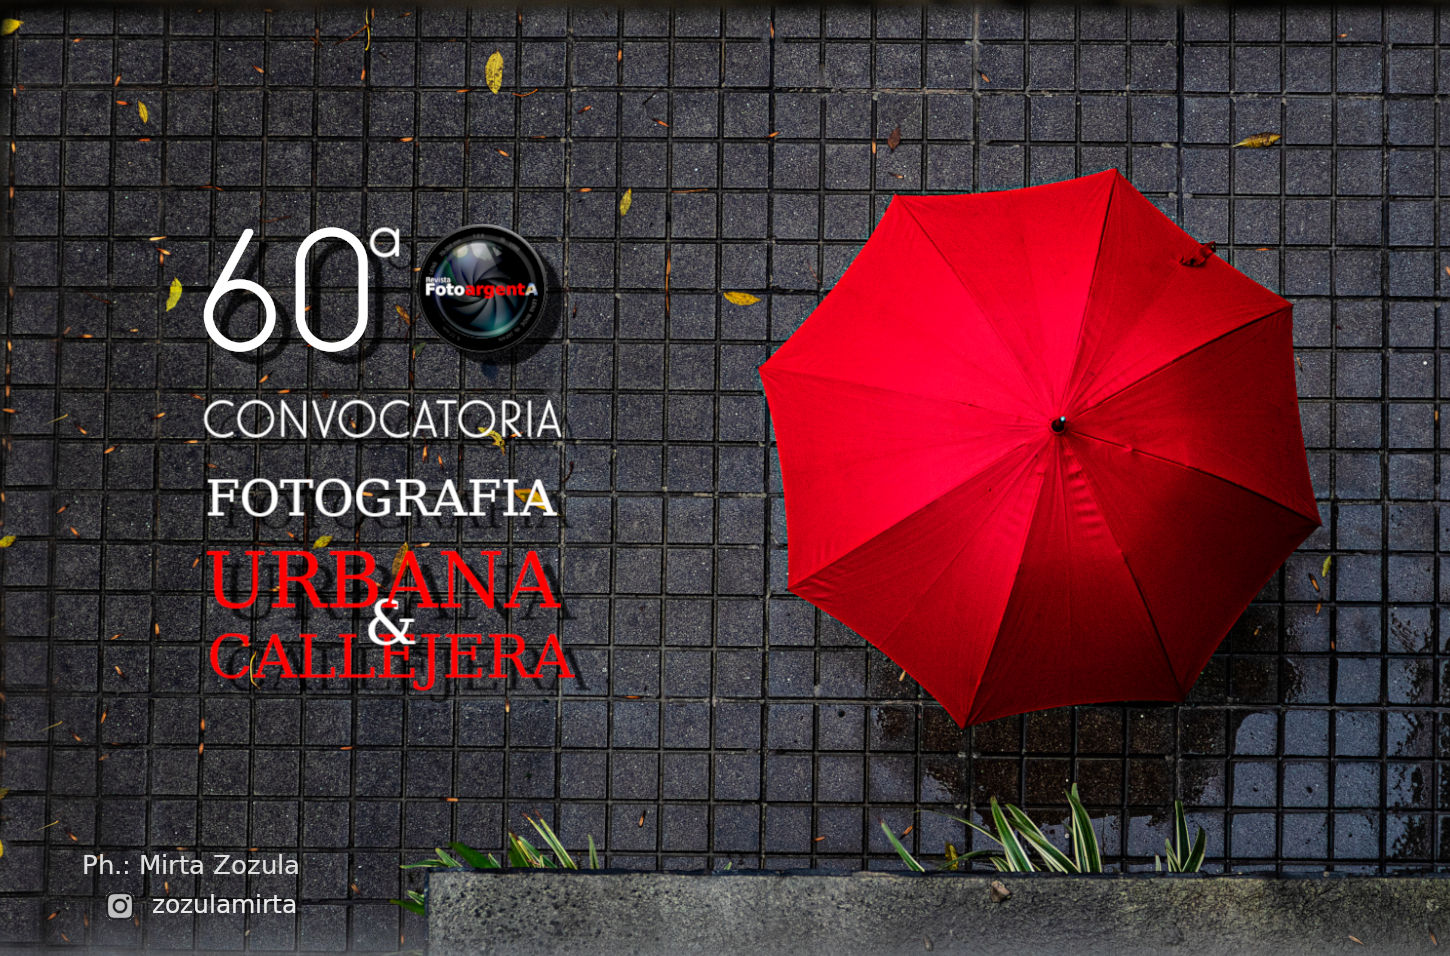 60th Call for Urban & Street Photography